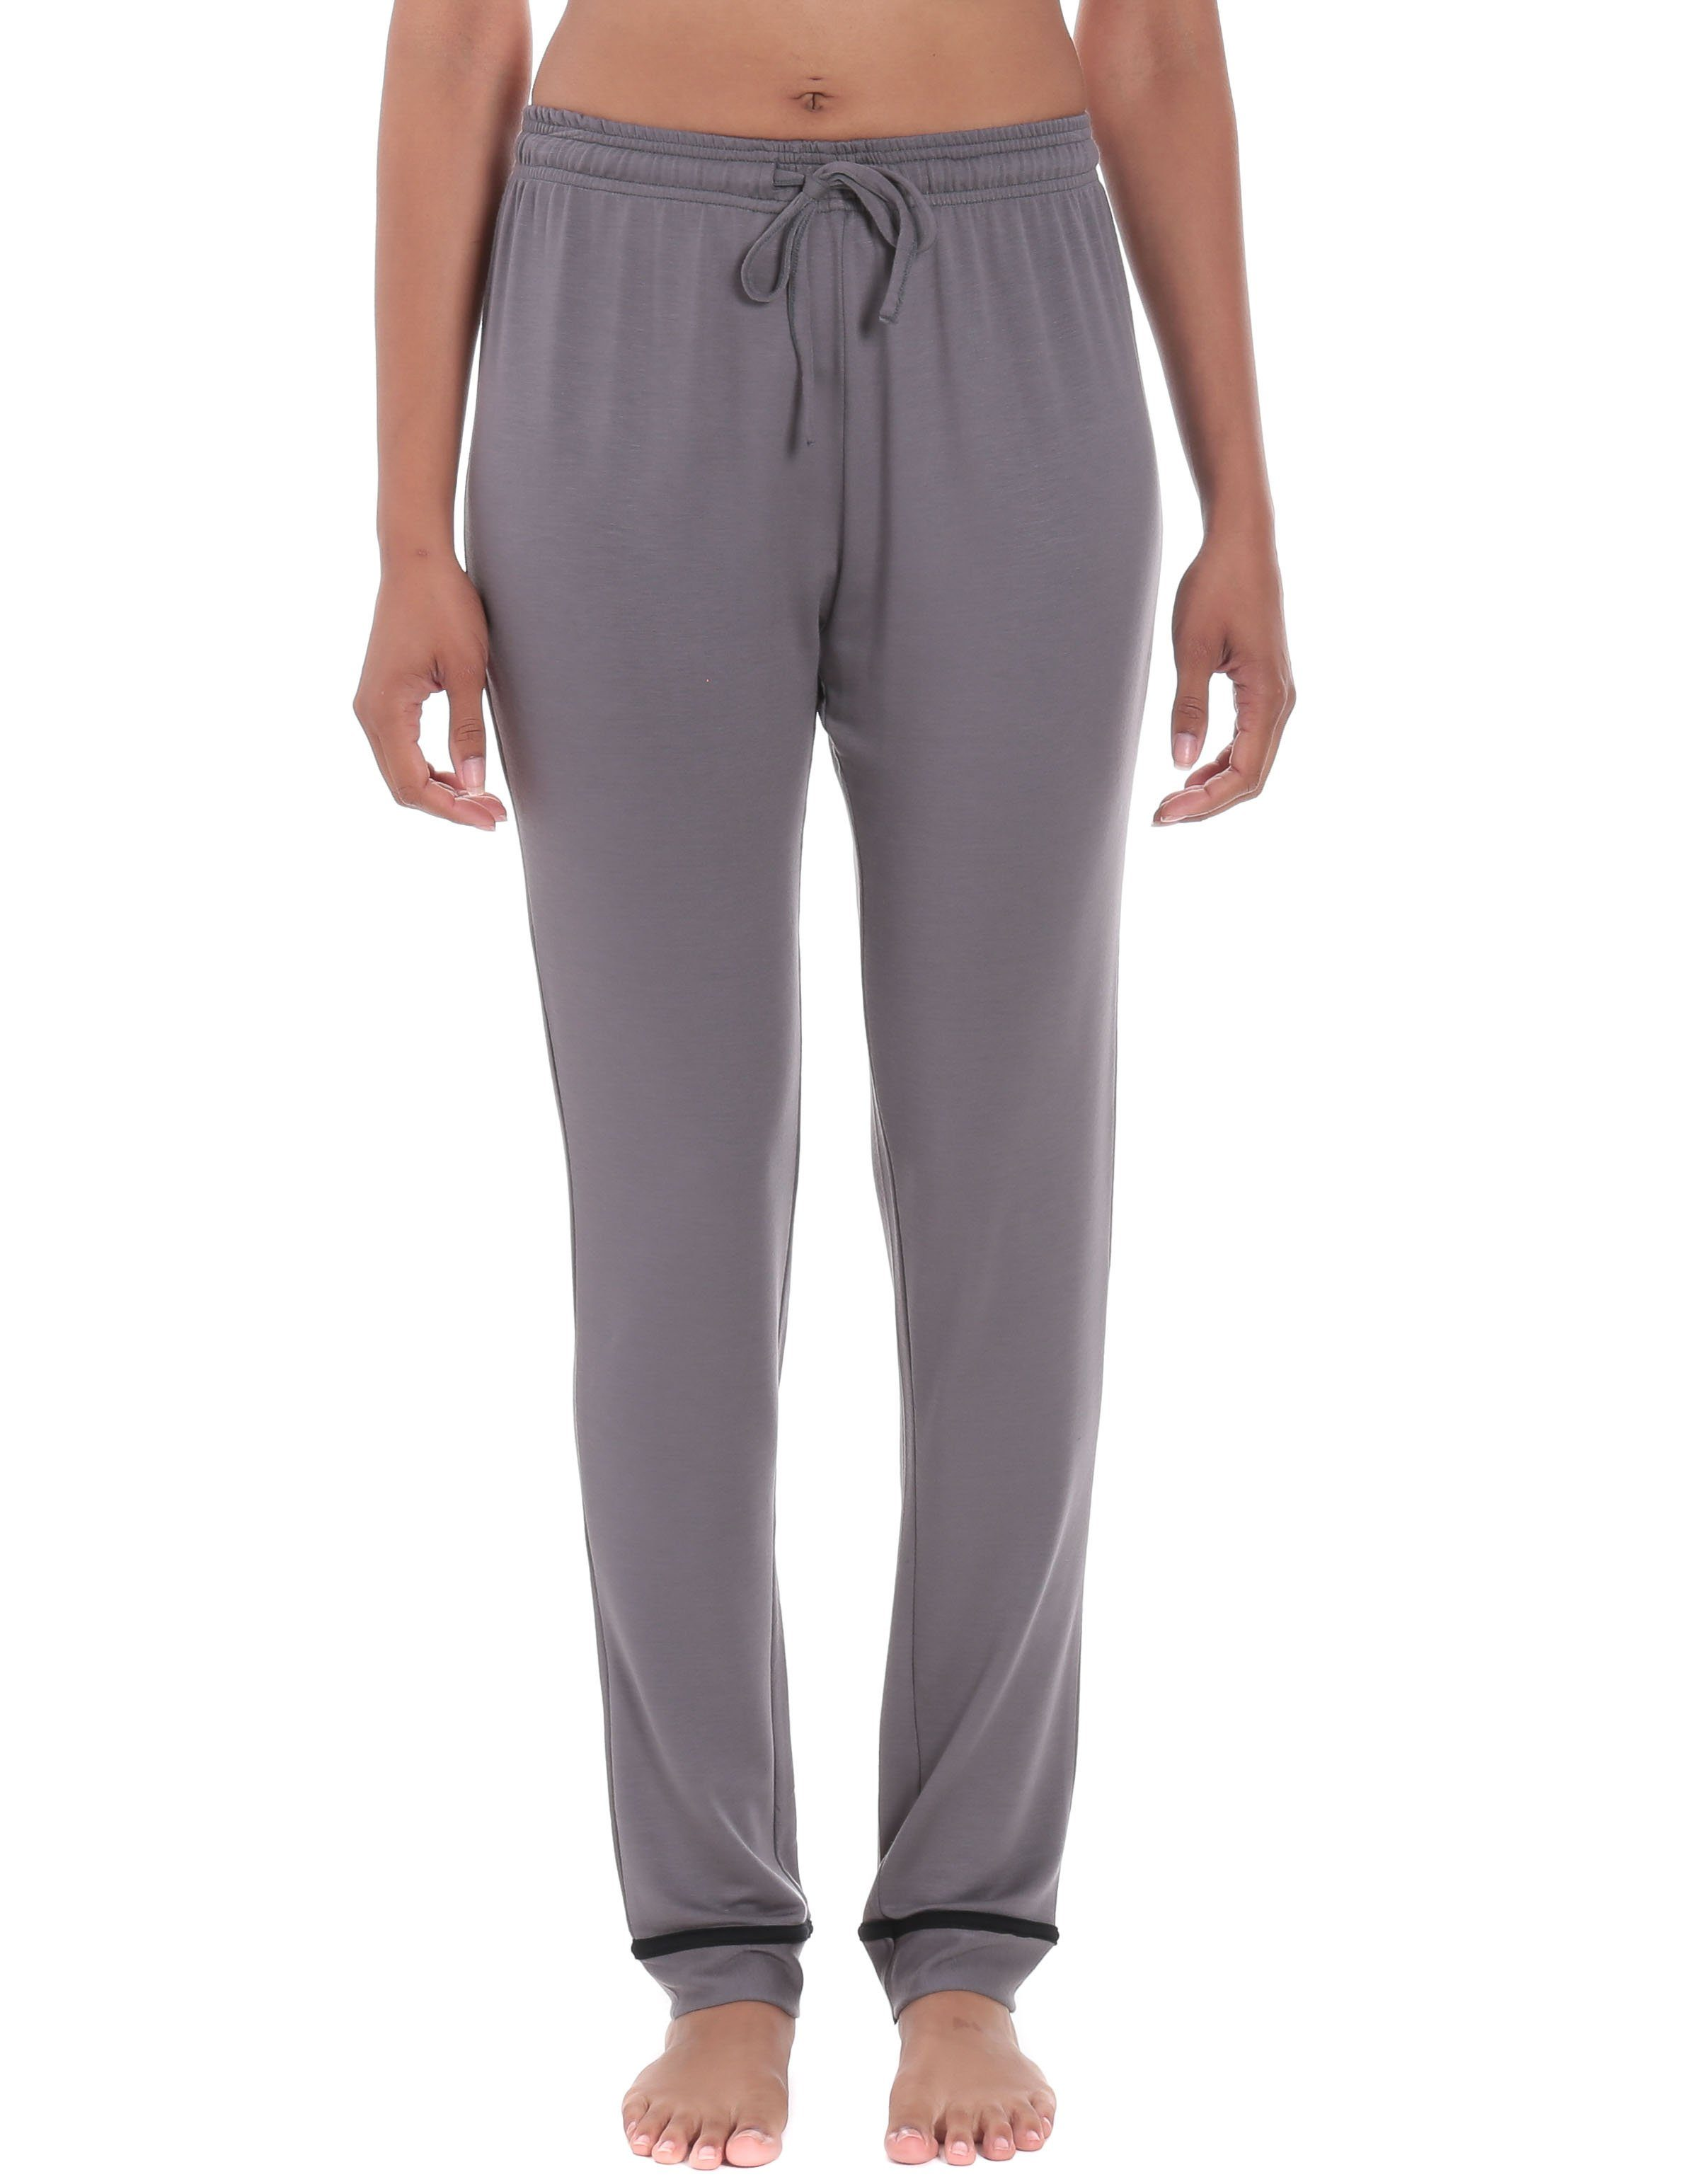 Women's Jersey Knit French Terry Tapered Lounge Pant